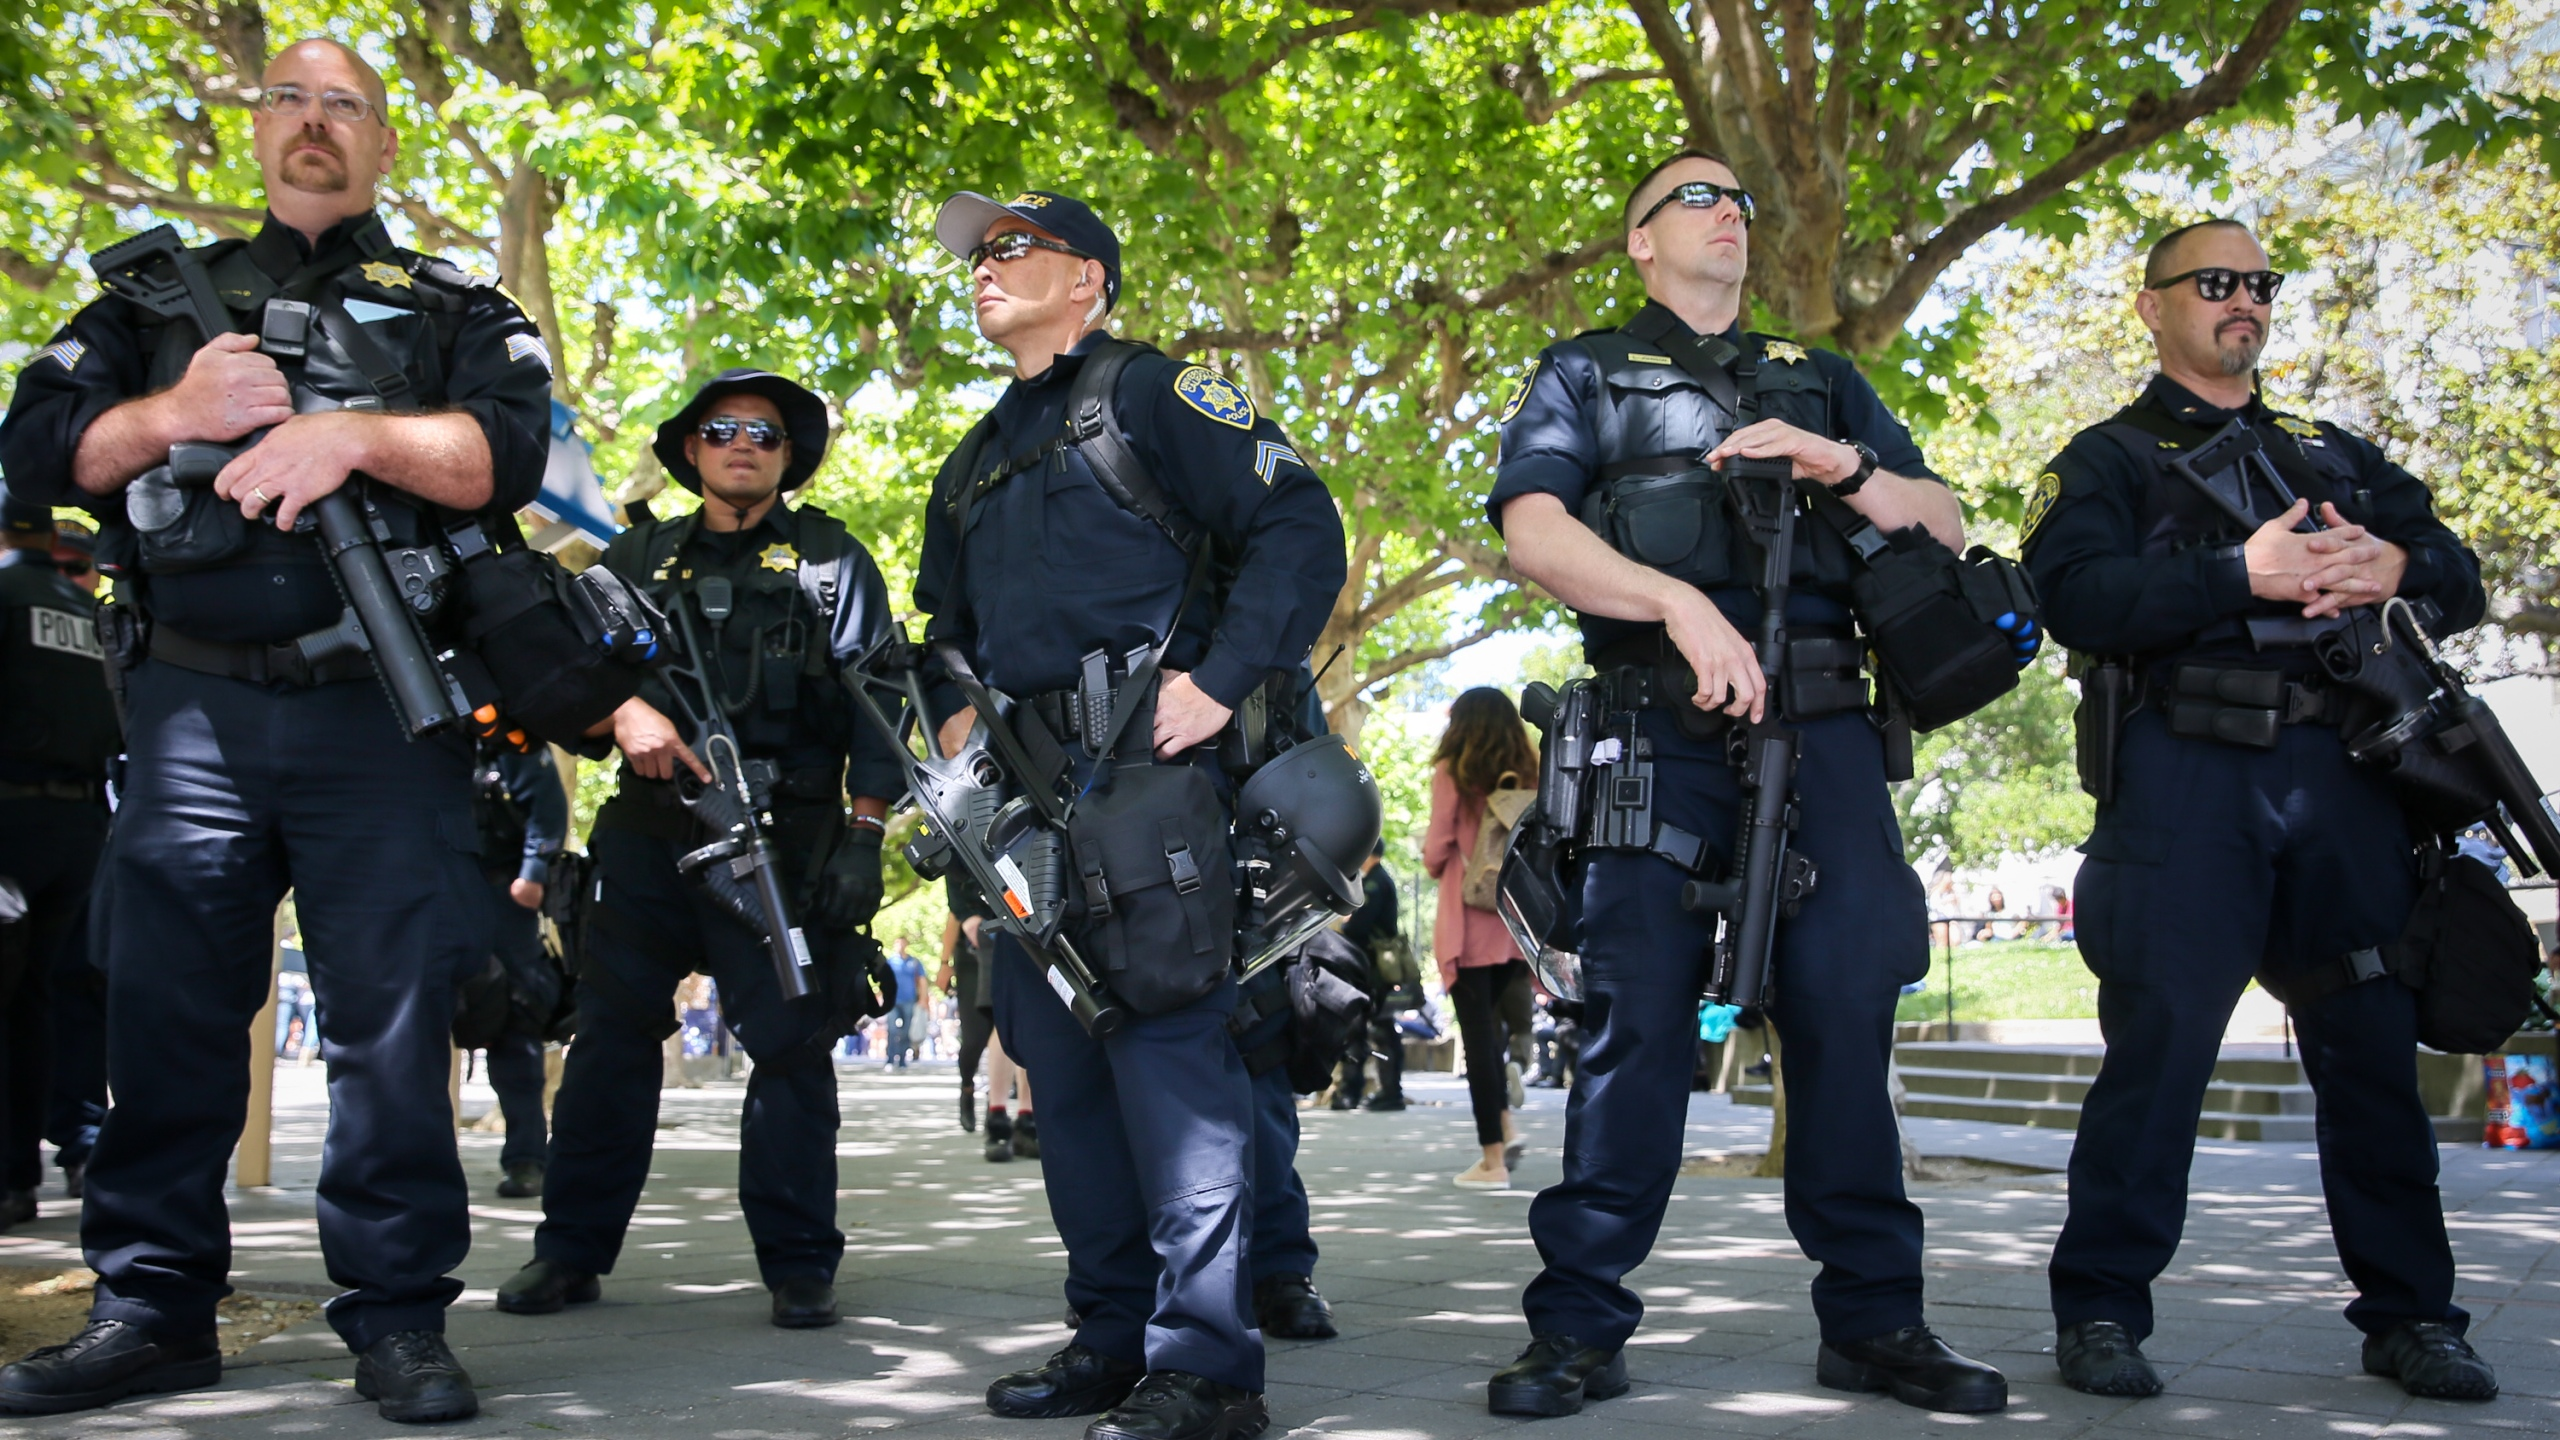 Officers form a line on the edge of the UC Berkeley campus on April 27, 2017 in Berkeley, California. (Elijah Nouvelage/Getty Images)